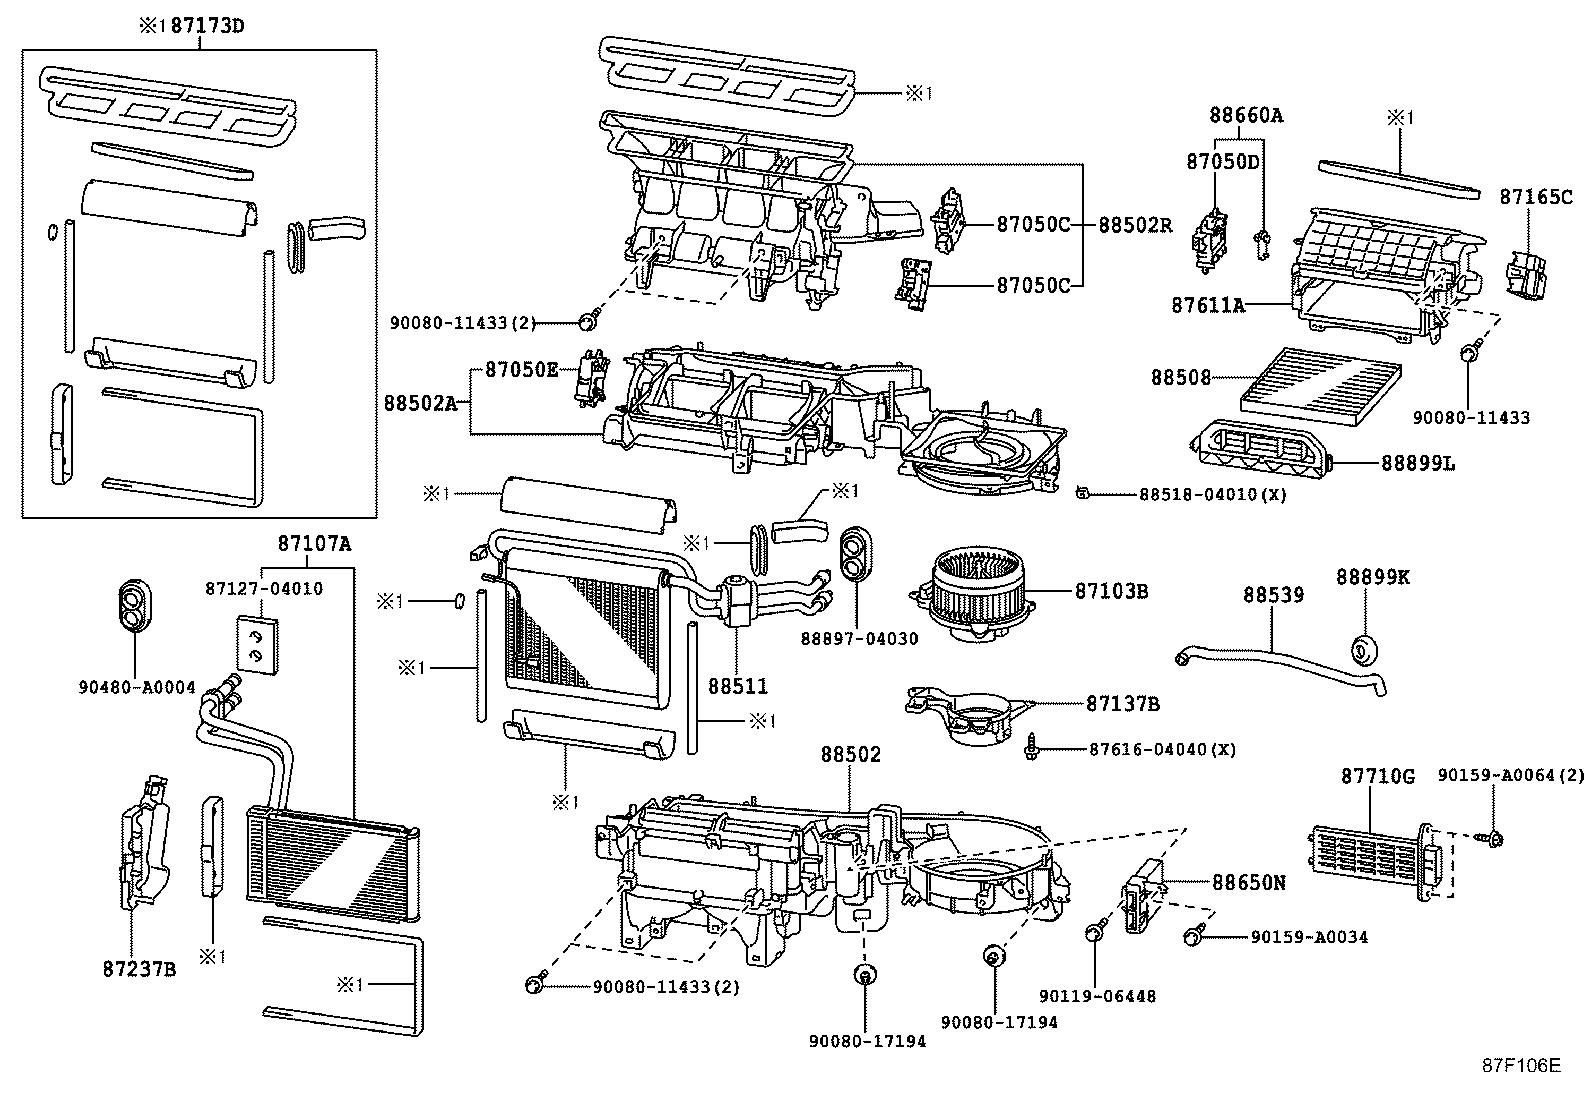 toyota tacoma 4 runner t100 automotive repair manual models covered 2wd and 4wd toyota tacoma 1995 thru 2000 4 runner 1996 thru 2000 and t100 1993 thru 1998 by john h haynes published by haynes north america inc 1999 paperback